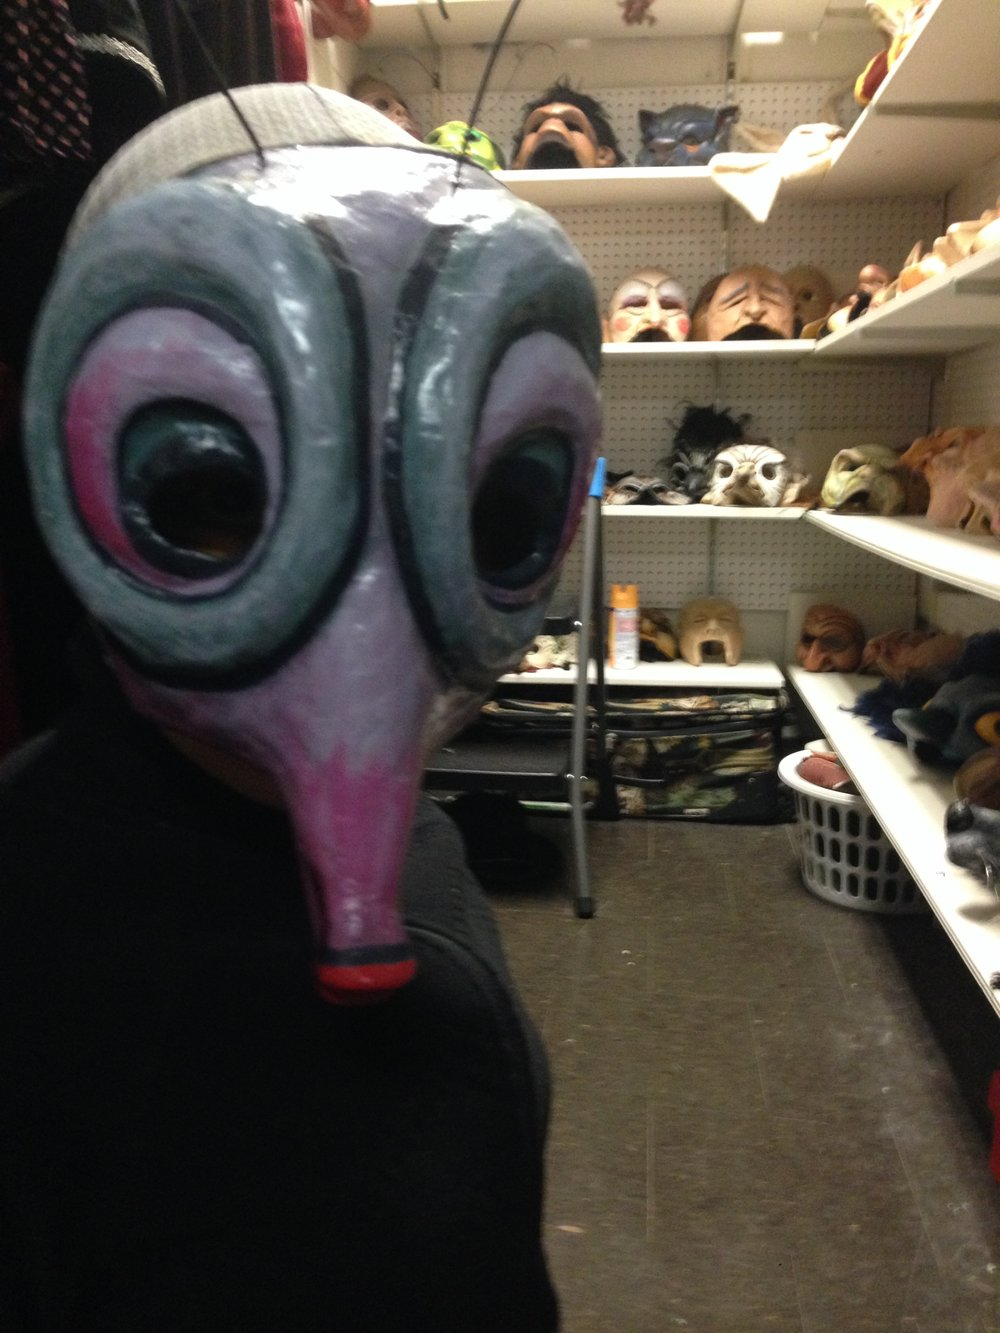 A sneak peek into the mask closet.